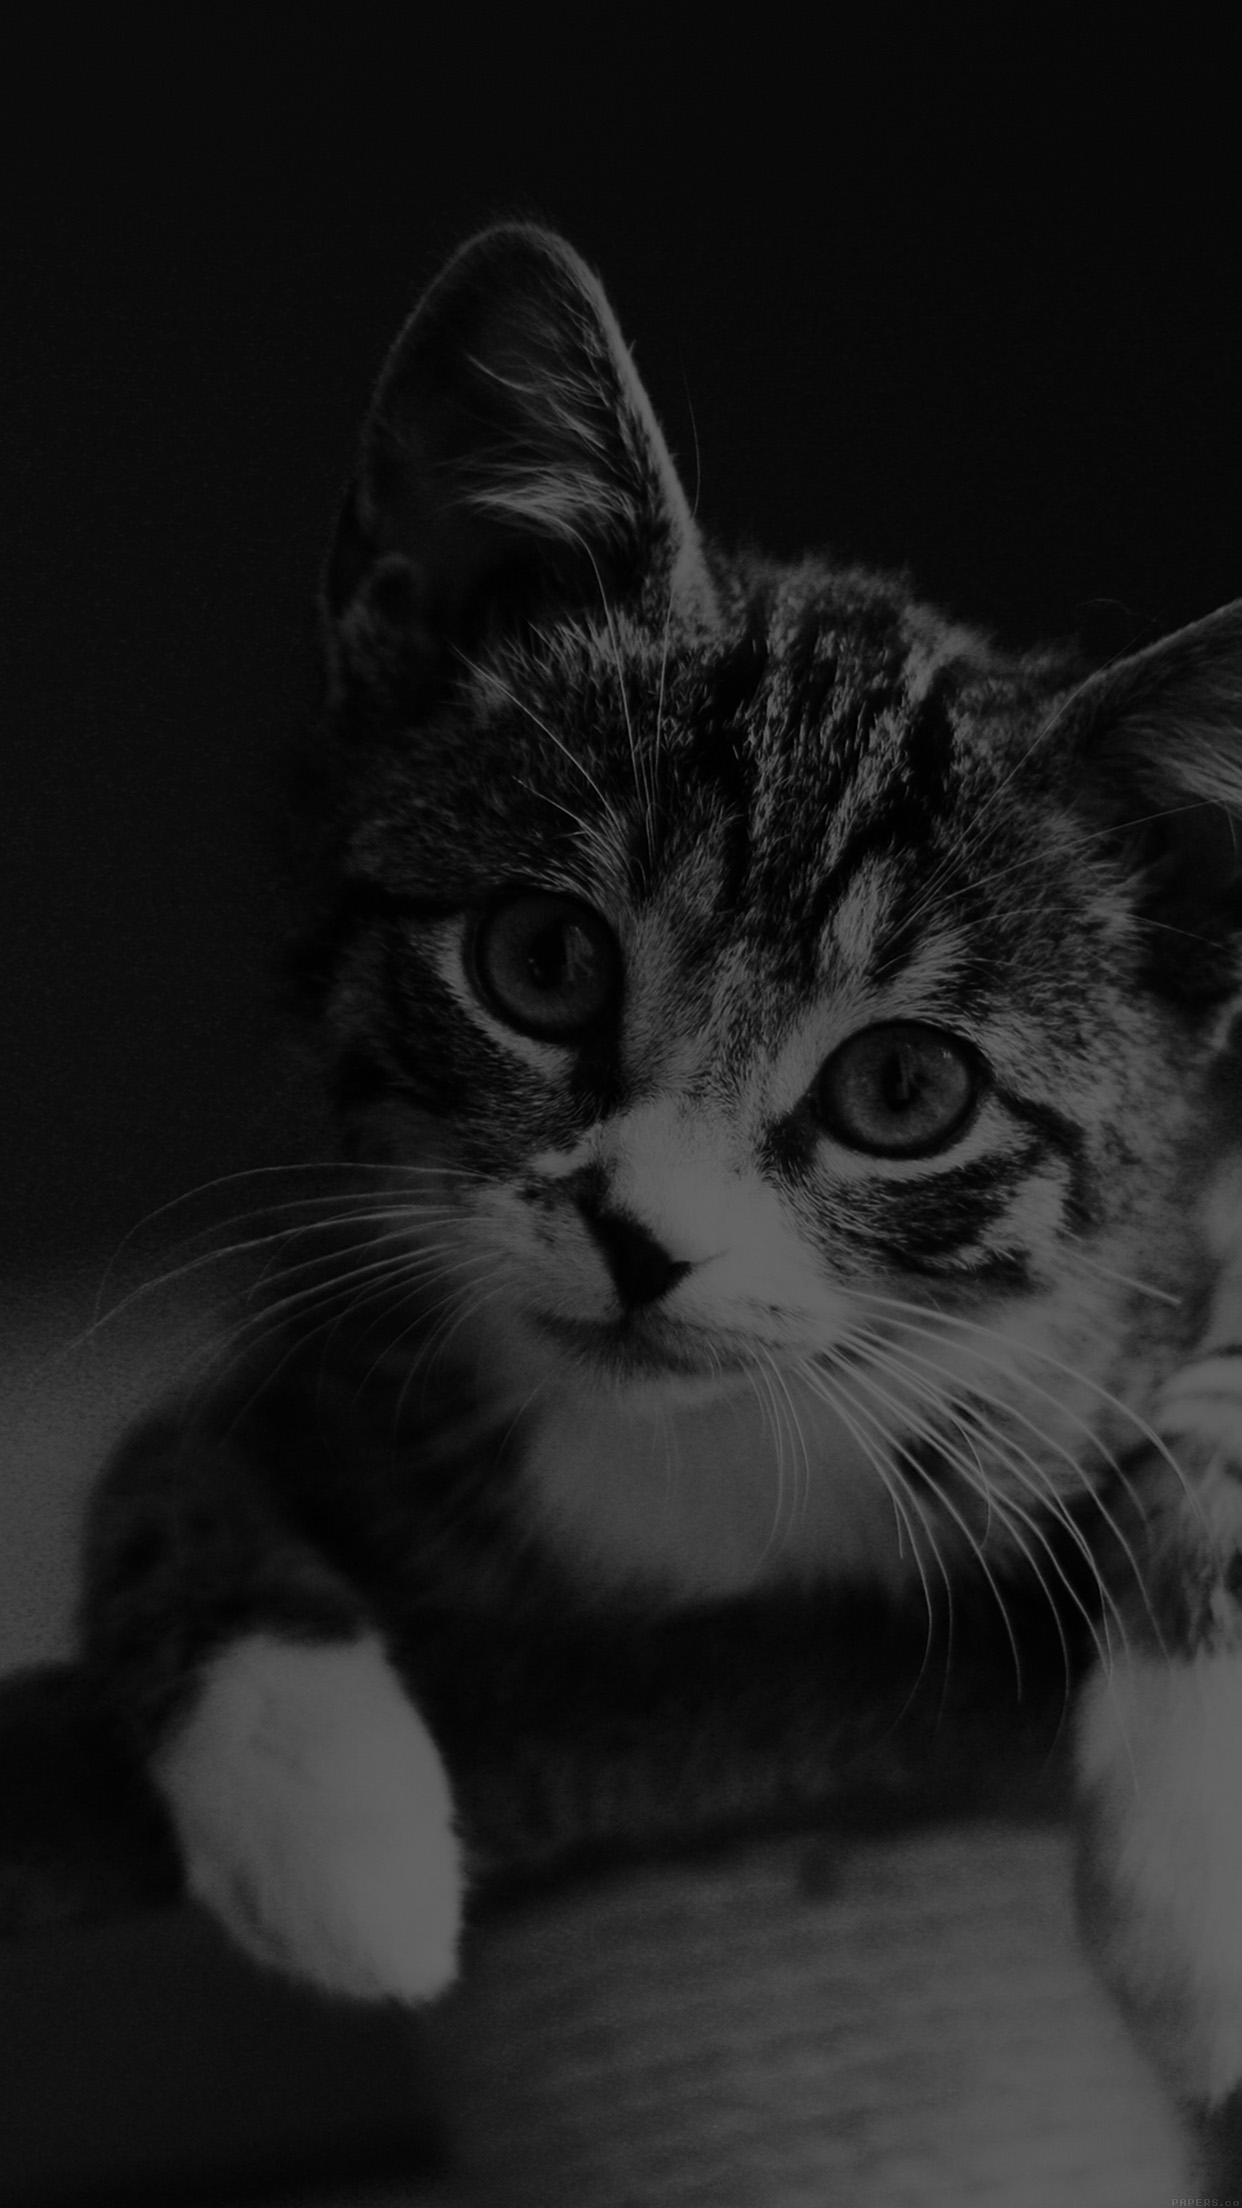 Mi36 Cute Cat Look Dark Bw Animal Love Nature